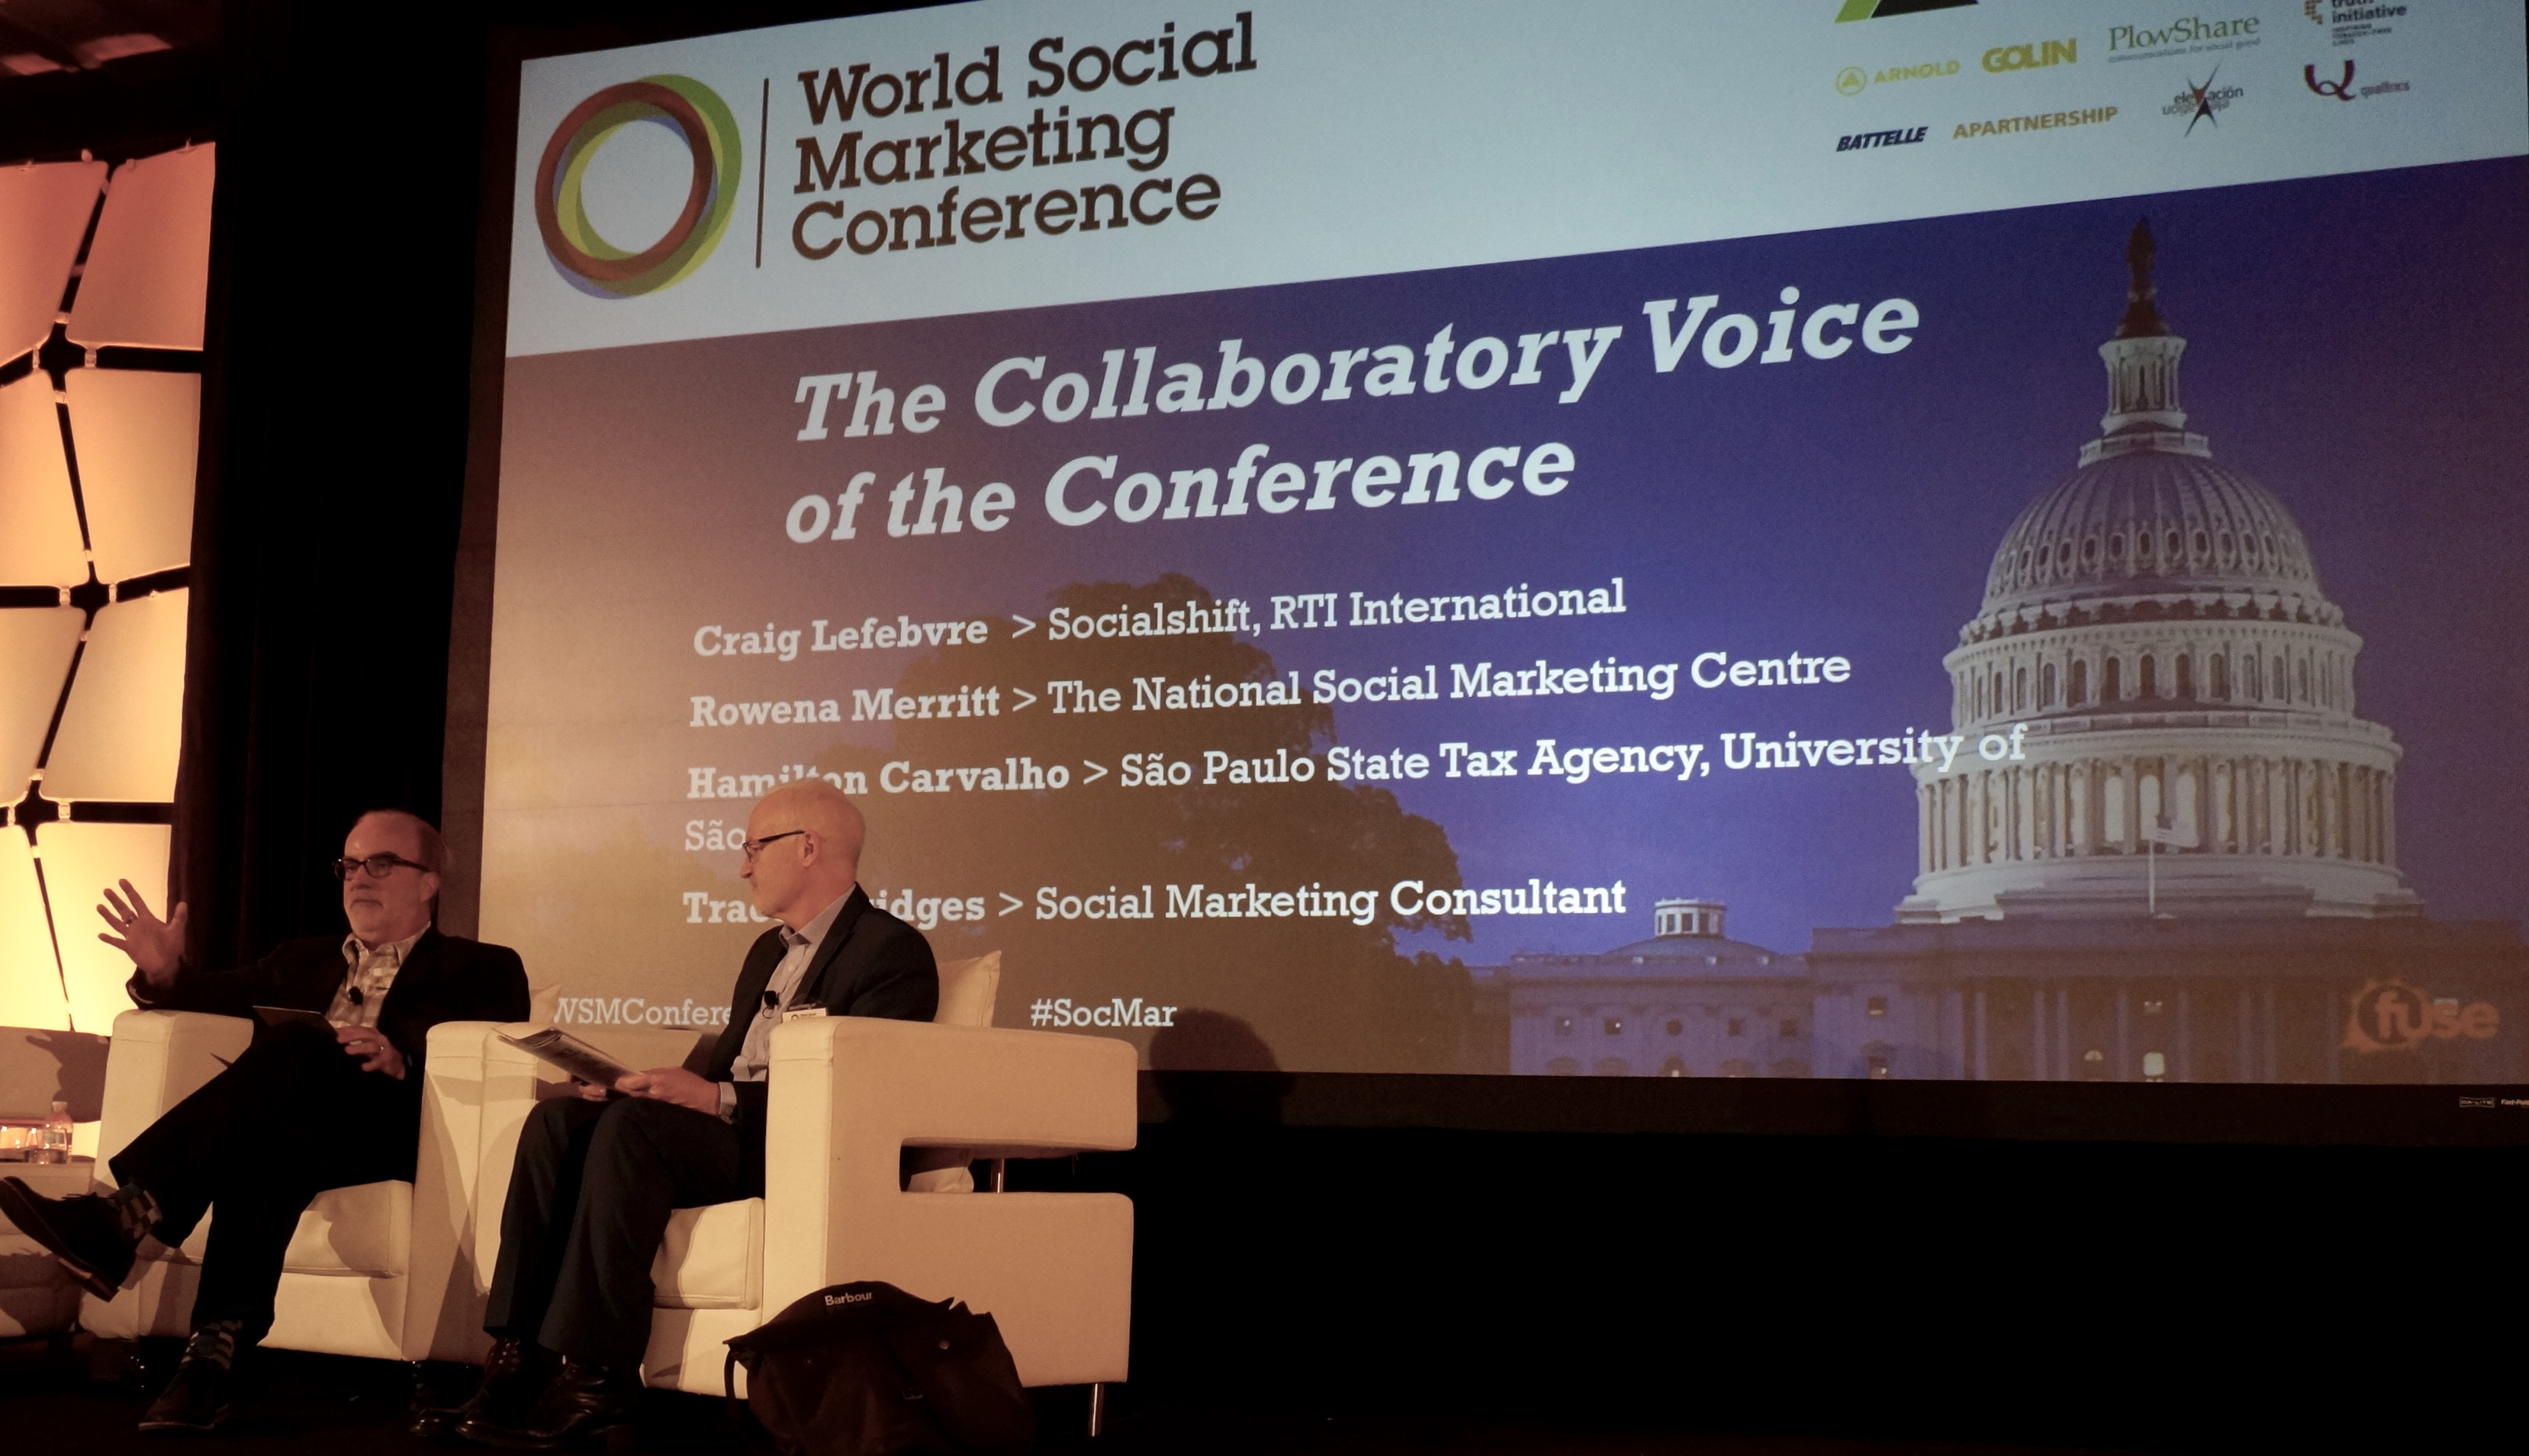 3 Key Takeaways from the 2017 World Social Marketing Conference